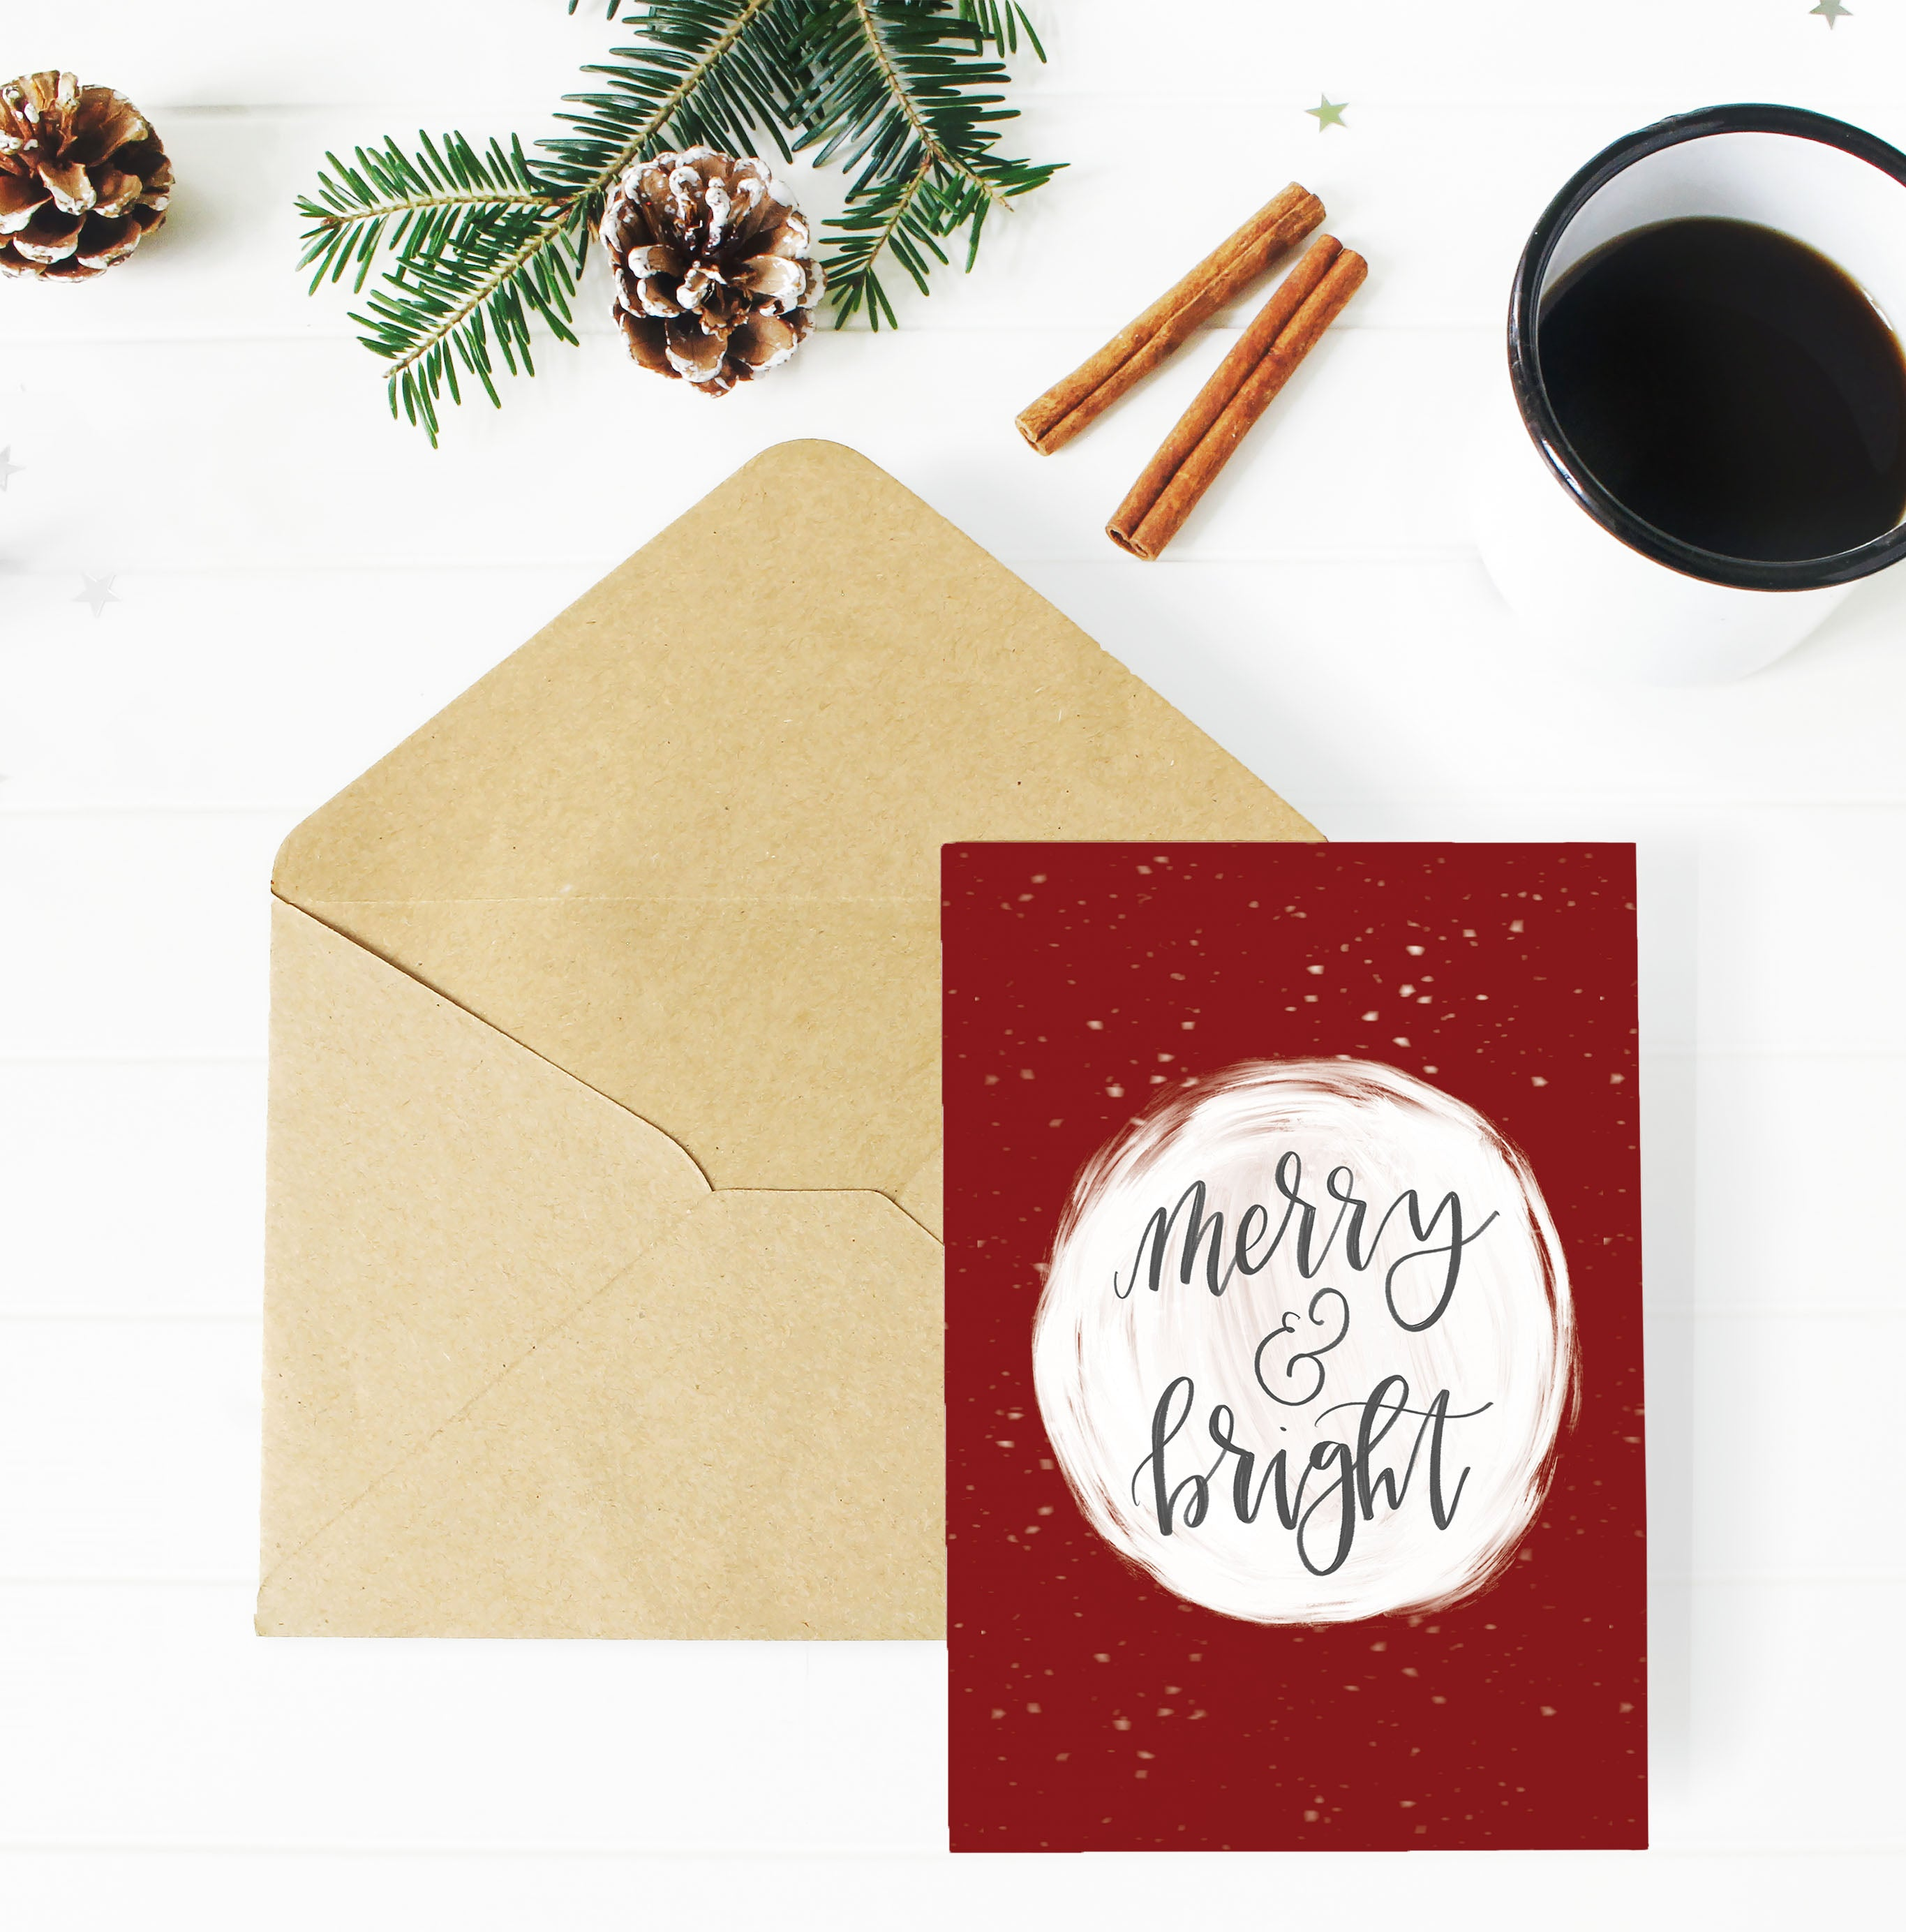 christmas, Christmas card, handmade Christmas card, whimsical Christmas card, hand lettered Christmas card, hand lettering, handlettered Christmas card, fun Christmas card, Christmas card set, handmade Christmas card sets, small business Christmas, Pittsburgh Christmas cards, Pittsburgh Christmas art, oh joyful day, merry and bright,